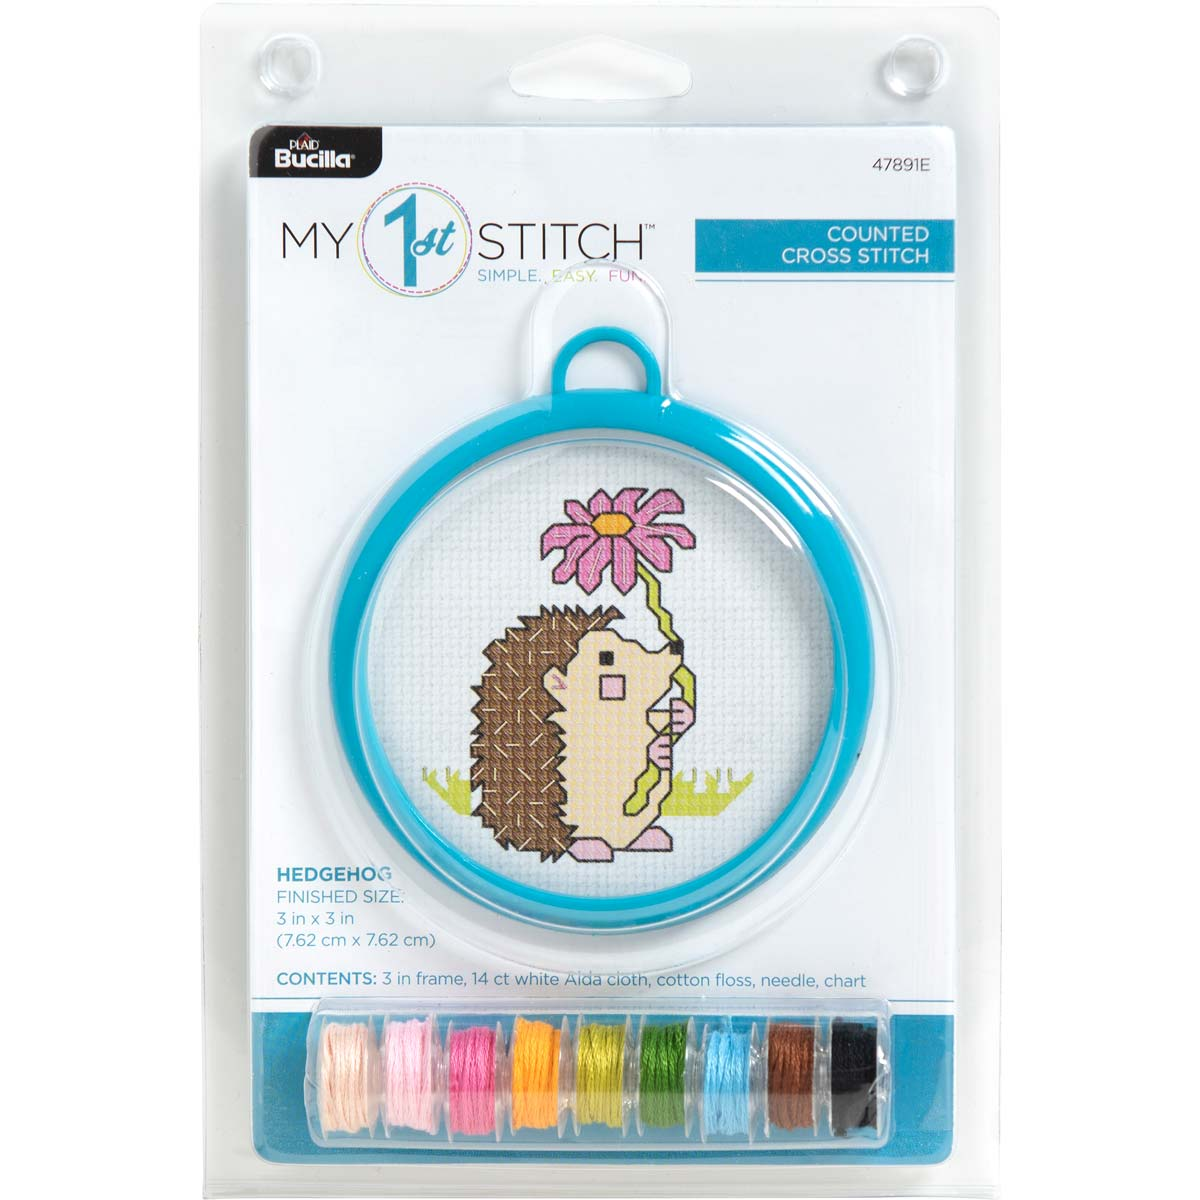 Bucilla ® My 1st Stitch™ - Counted Cross Stitch Kits - Mini - Hedgehog - 47891E